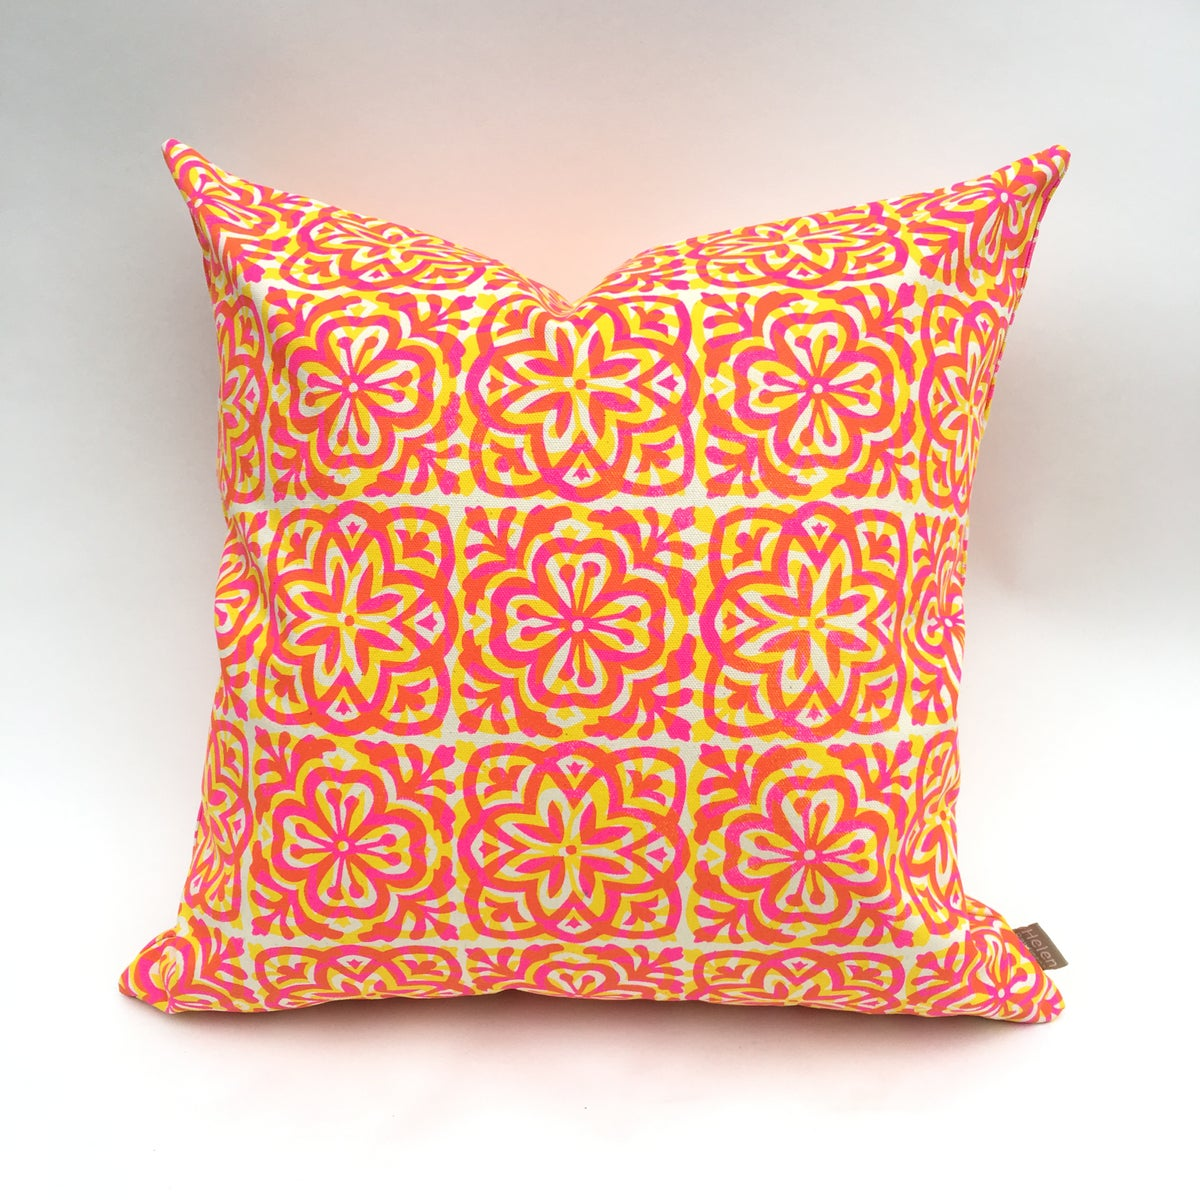 Image of Moroccan Tile Square Cushion - double print